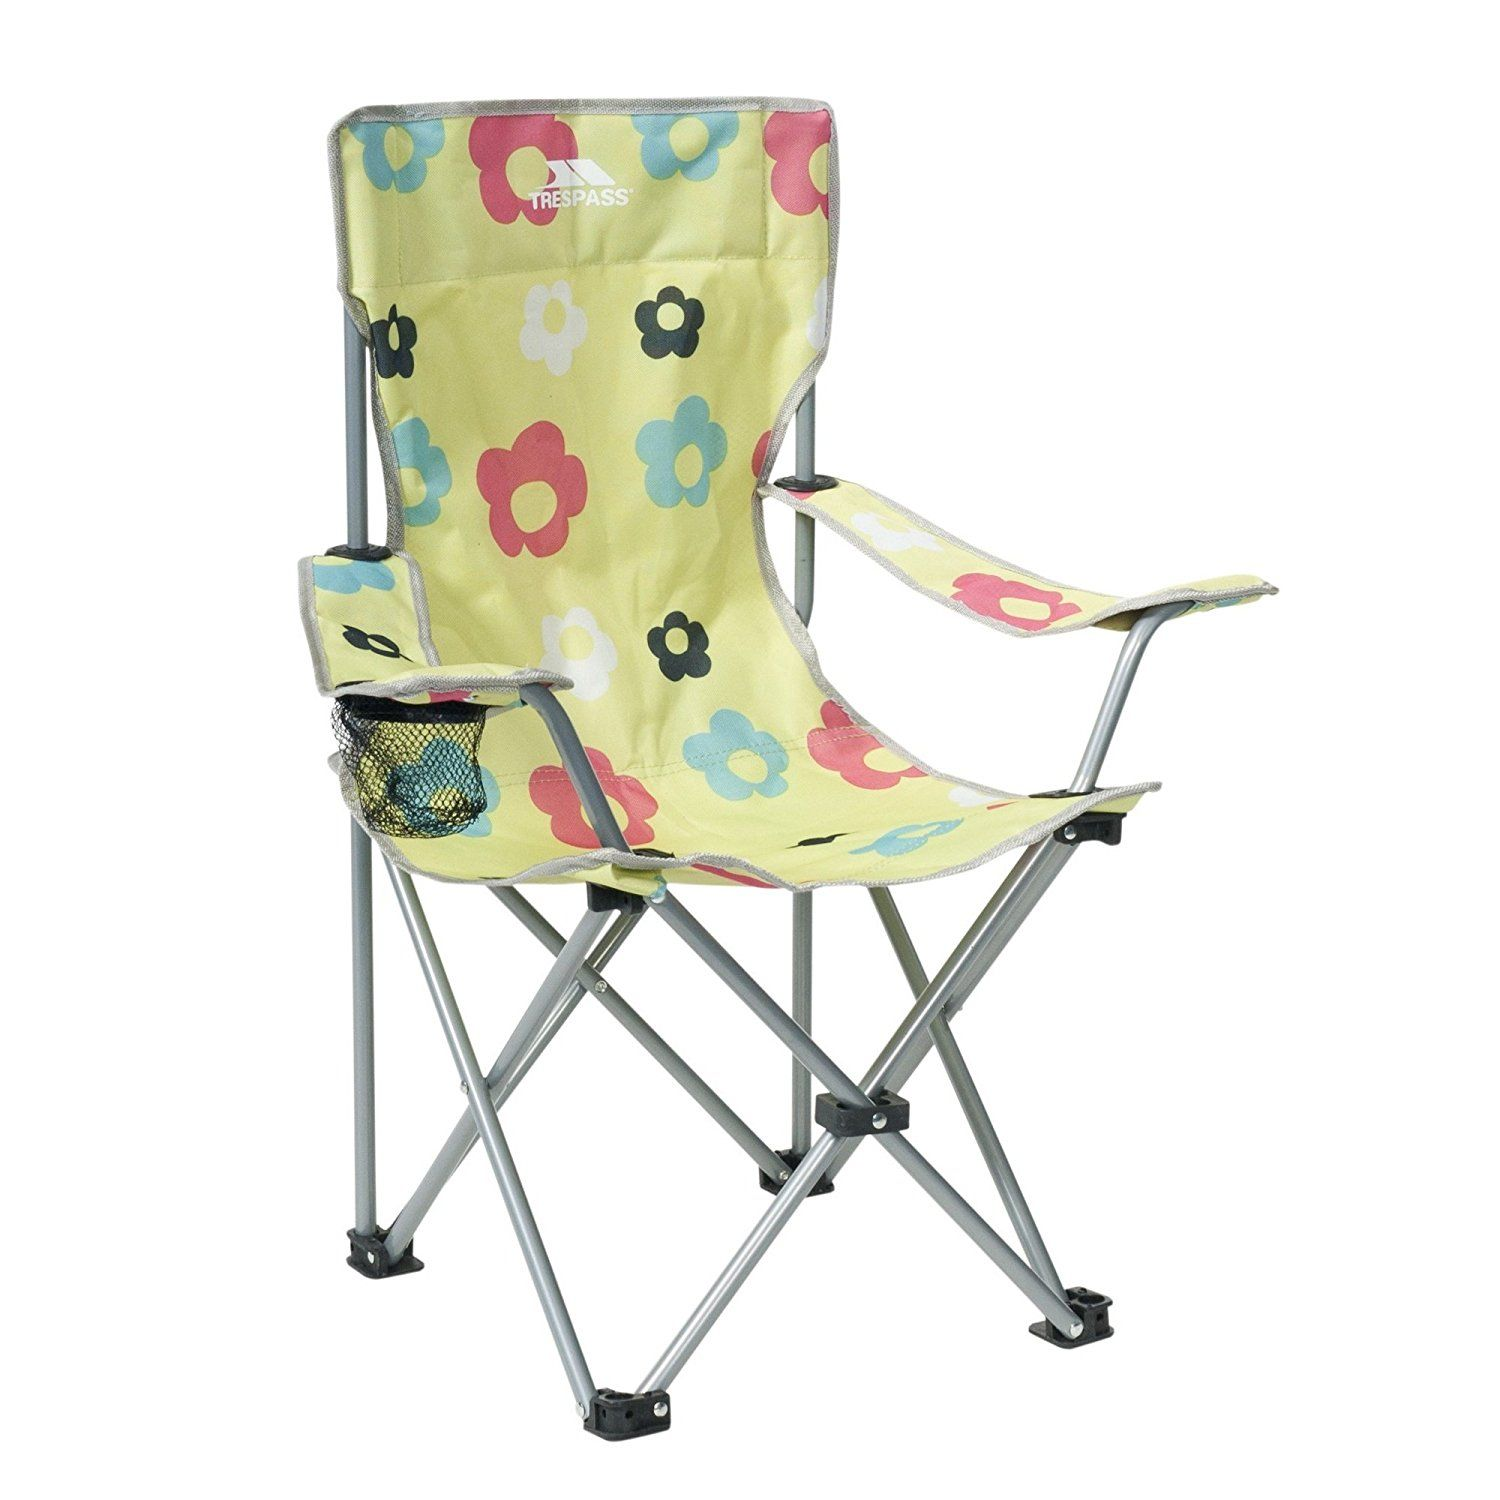 Kid Folding Camp Chairs With Carrying Bag.Trespass Childrens Kids Joejoe Camping Chair With Carry Bag